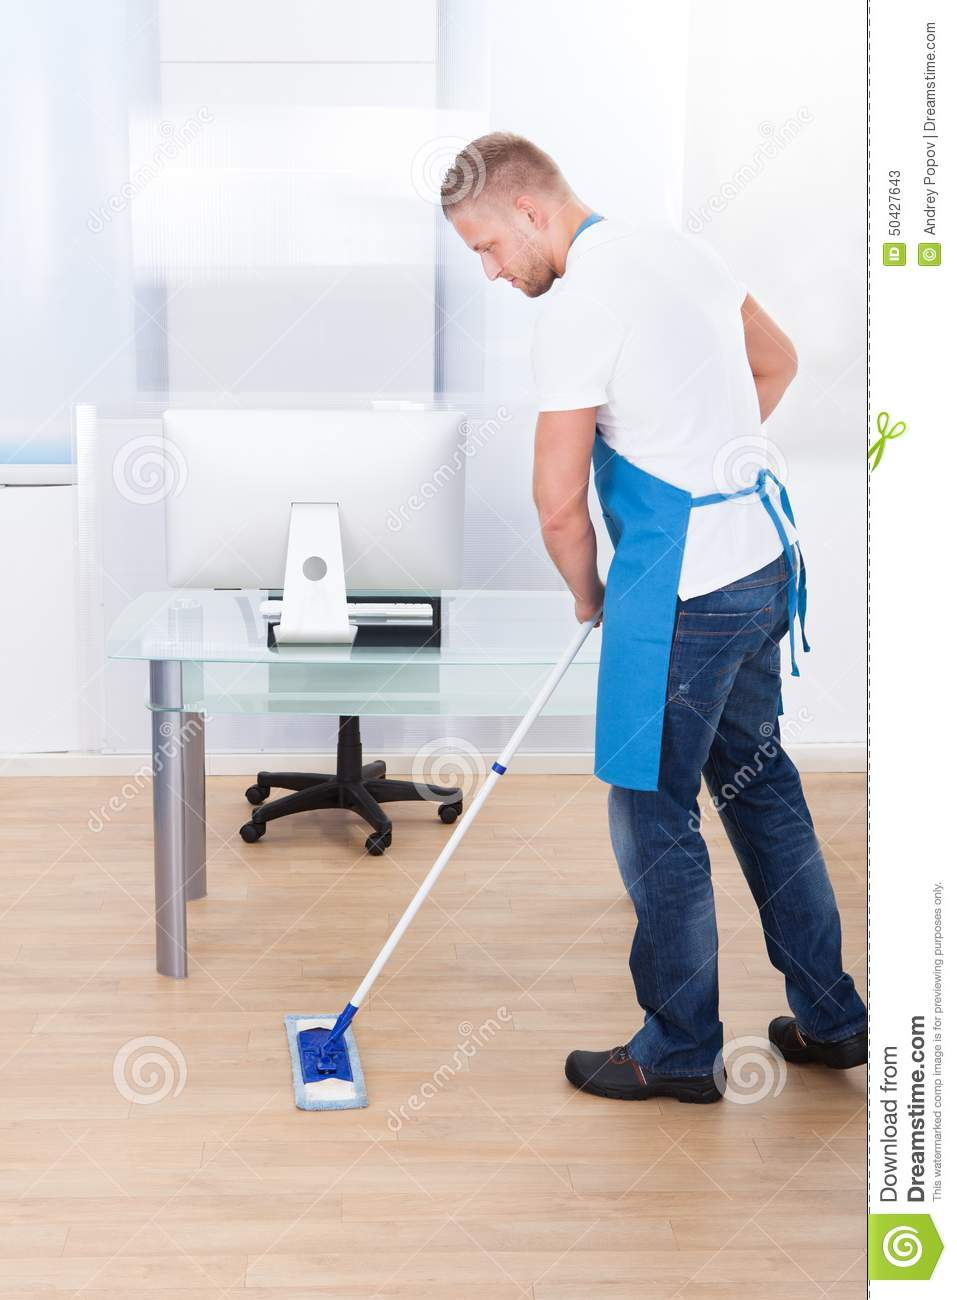 Janitor Cleaning The Floor In An Office Building Stock